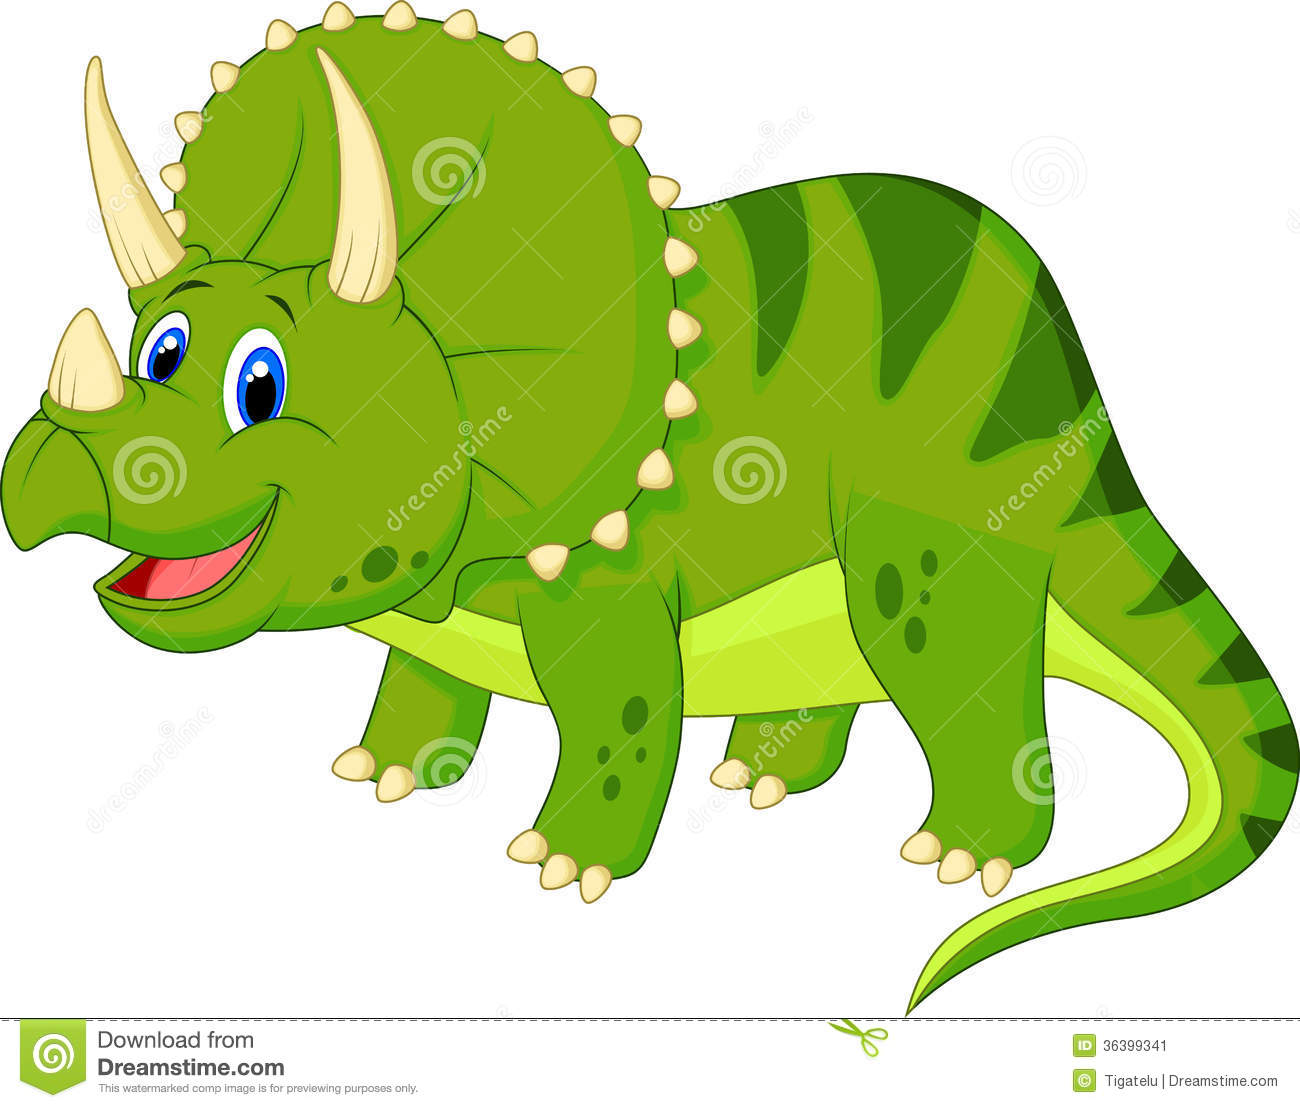 Triceratops clipart #10, Download drawings